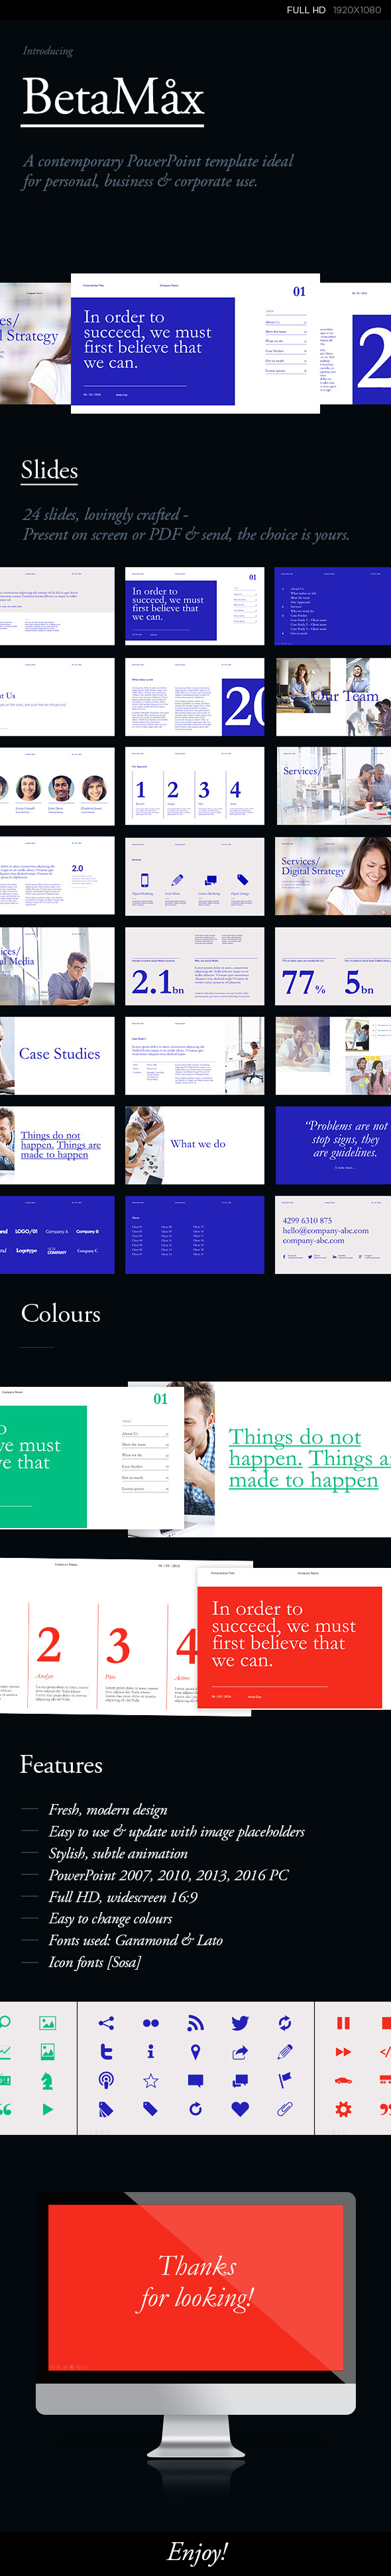 a contemporary powerpoint template ideal for personal, business, Powerpoint templates